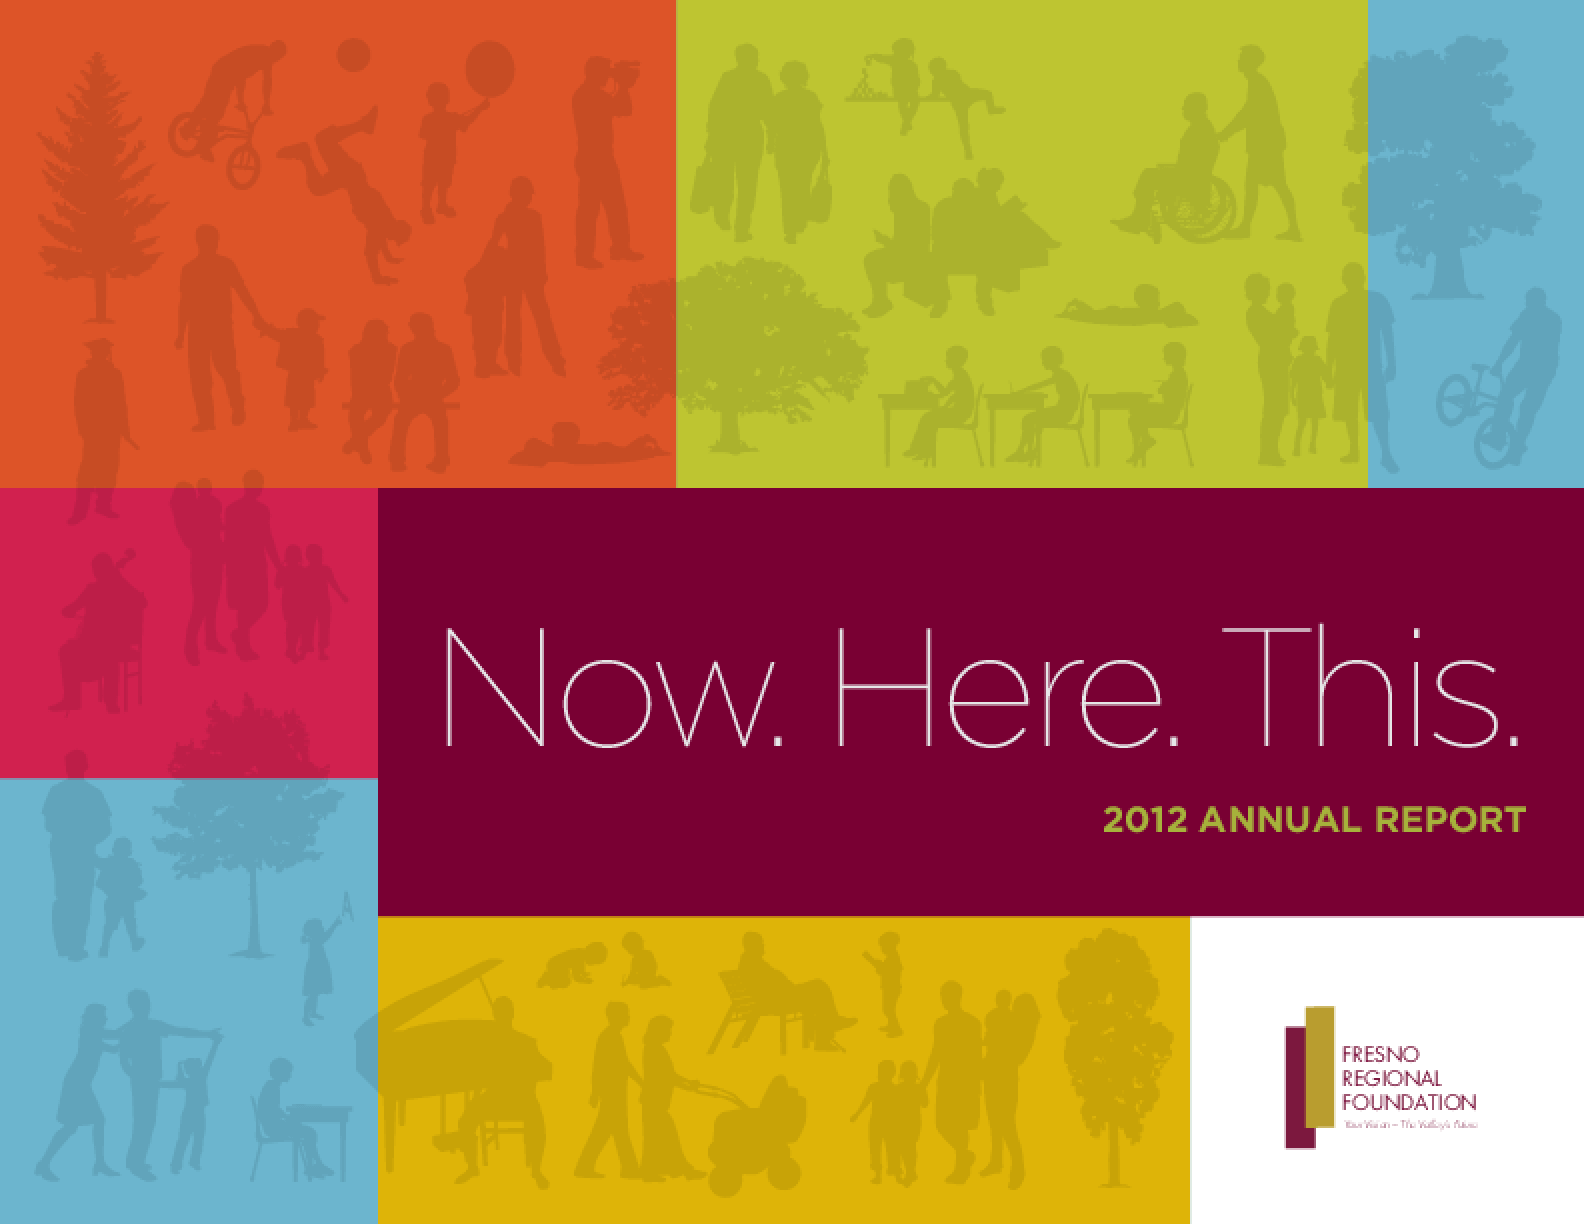 Now. Here. This: Fresno Regional Foundation 2012 Annual Report